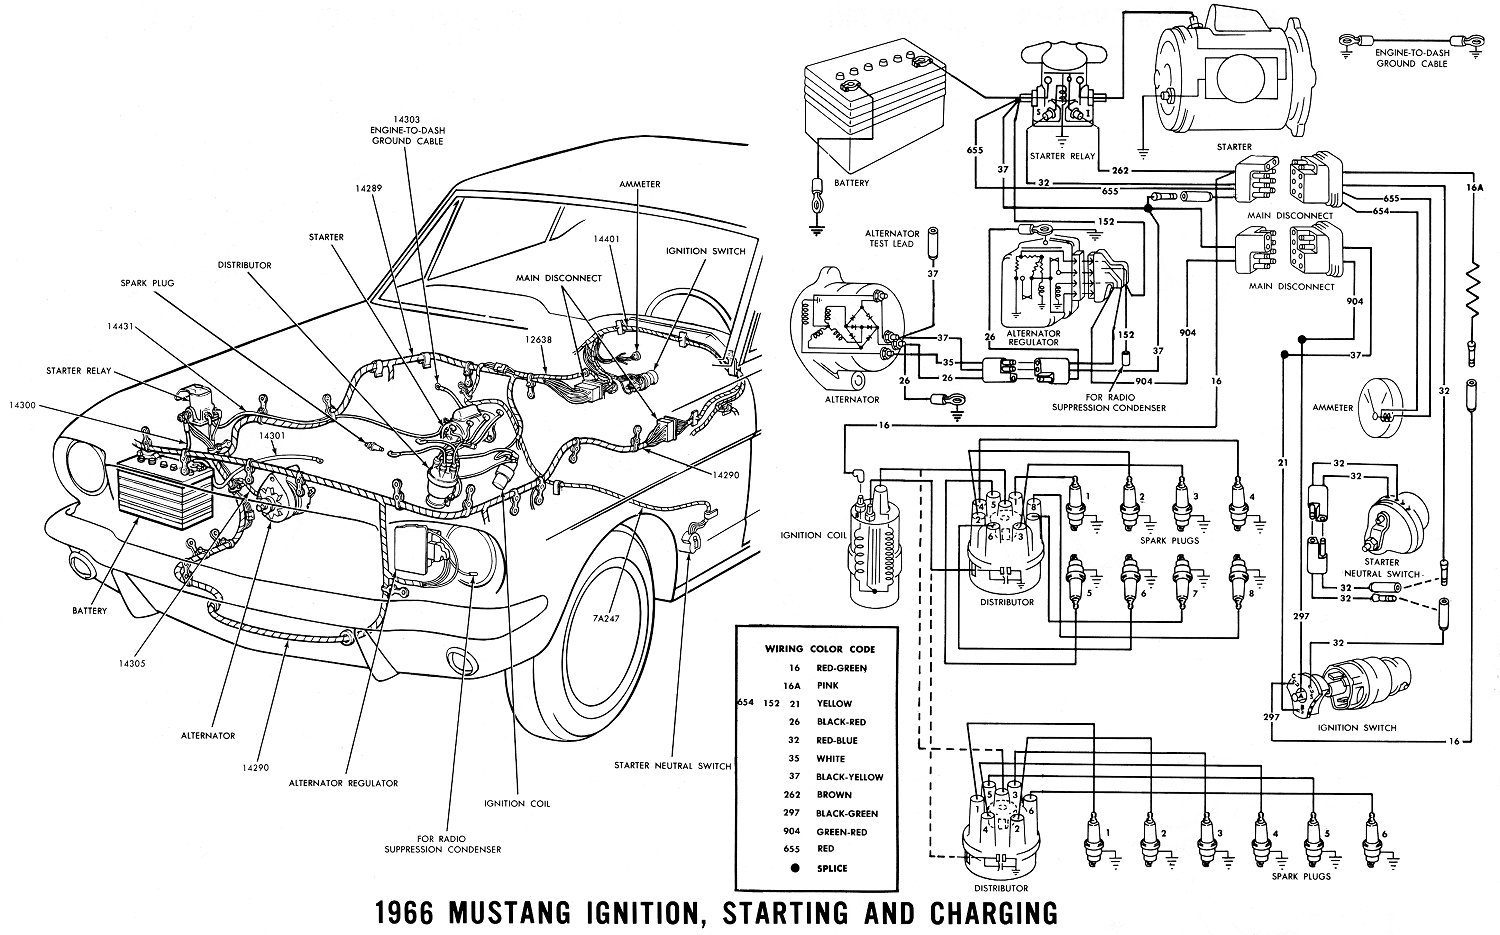 hight resolution of free auto wiring diagram 1966 mustang ignition wiring diagram 66 ford mustang wiring diagram 1967 ford